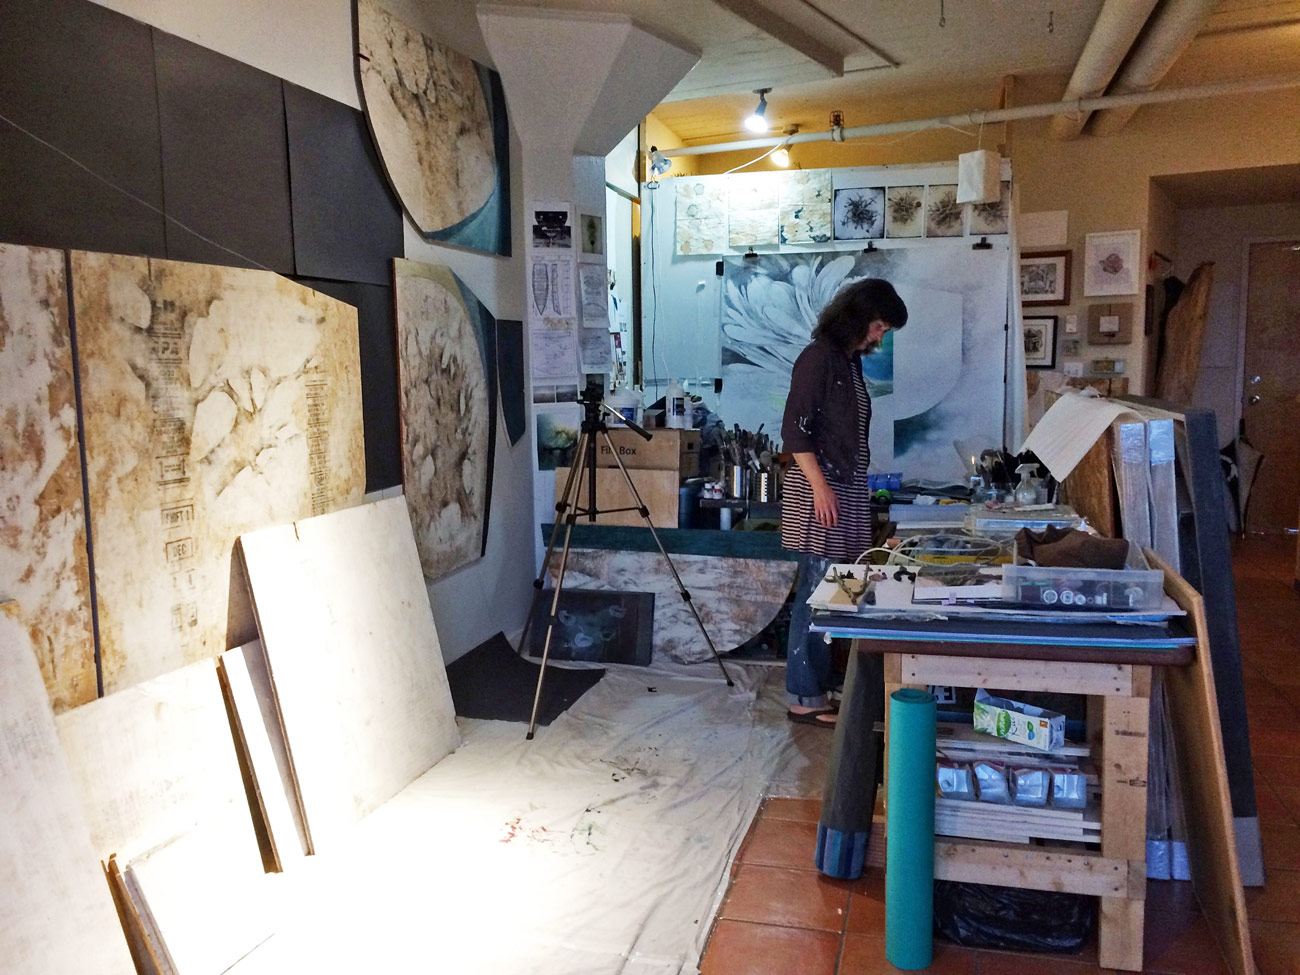 studio overview of Siobhan Humston's studio